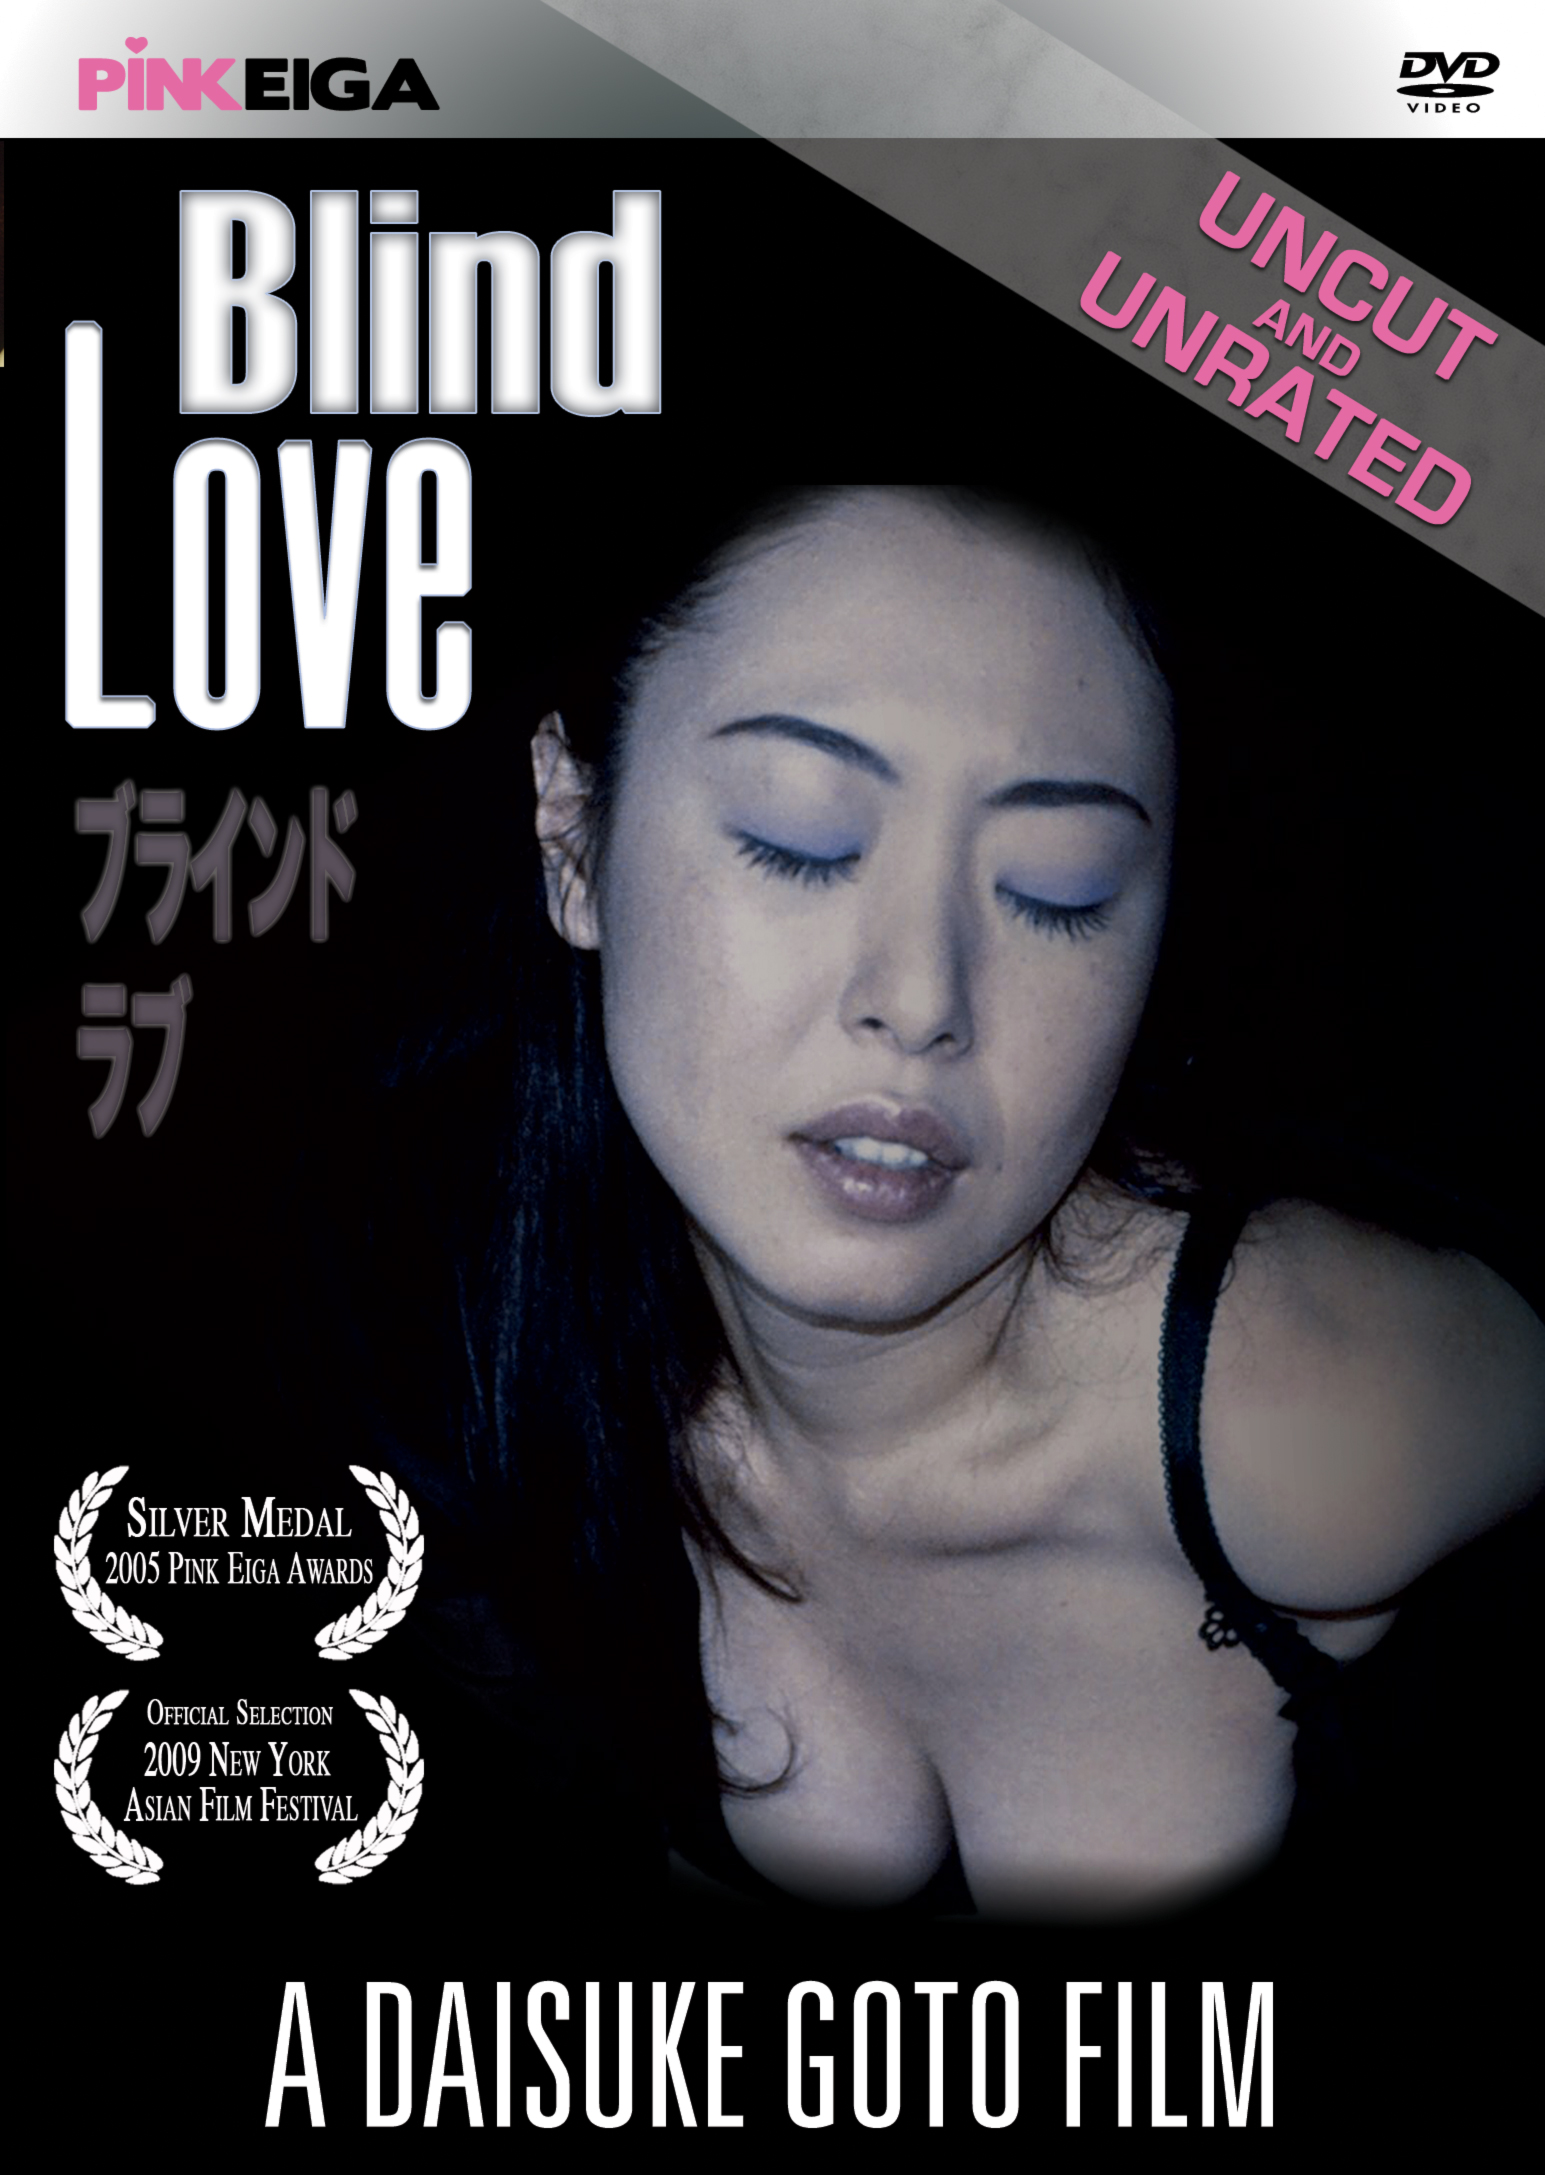 Blind Love Original DVD box cover